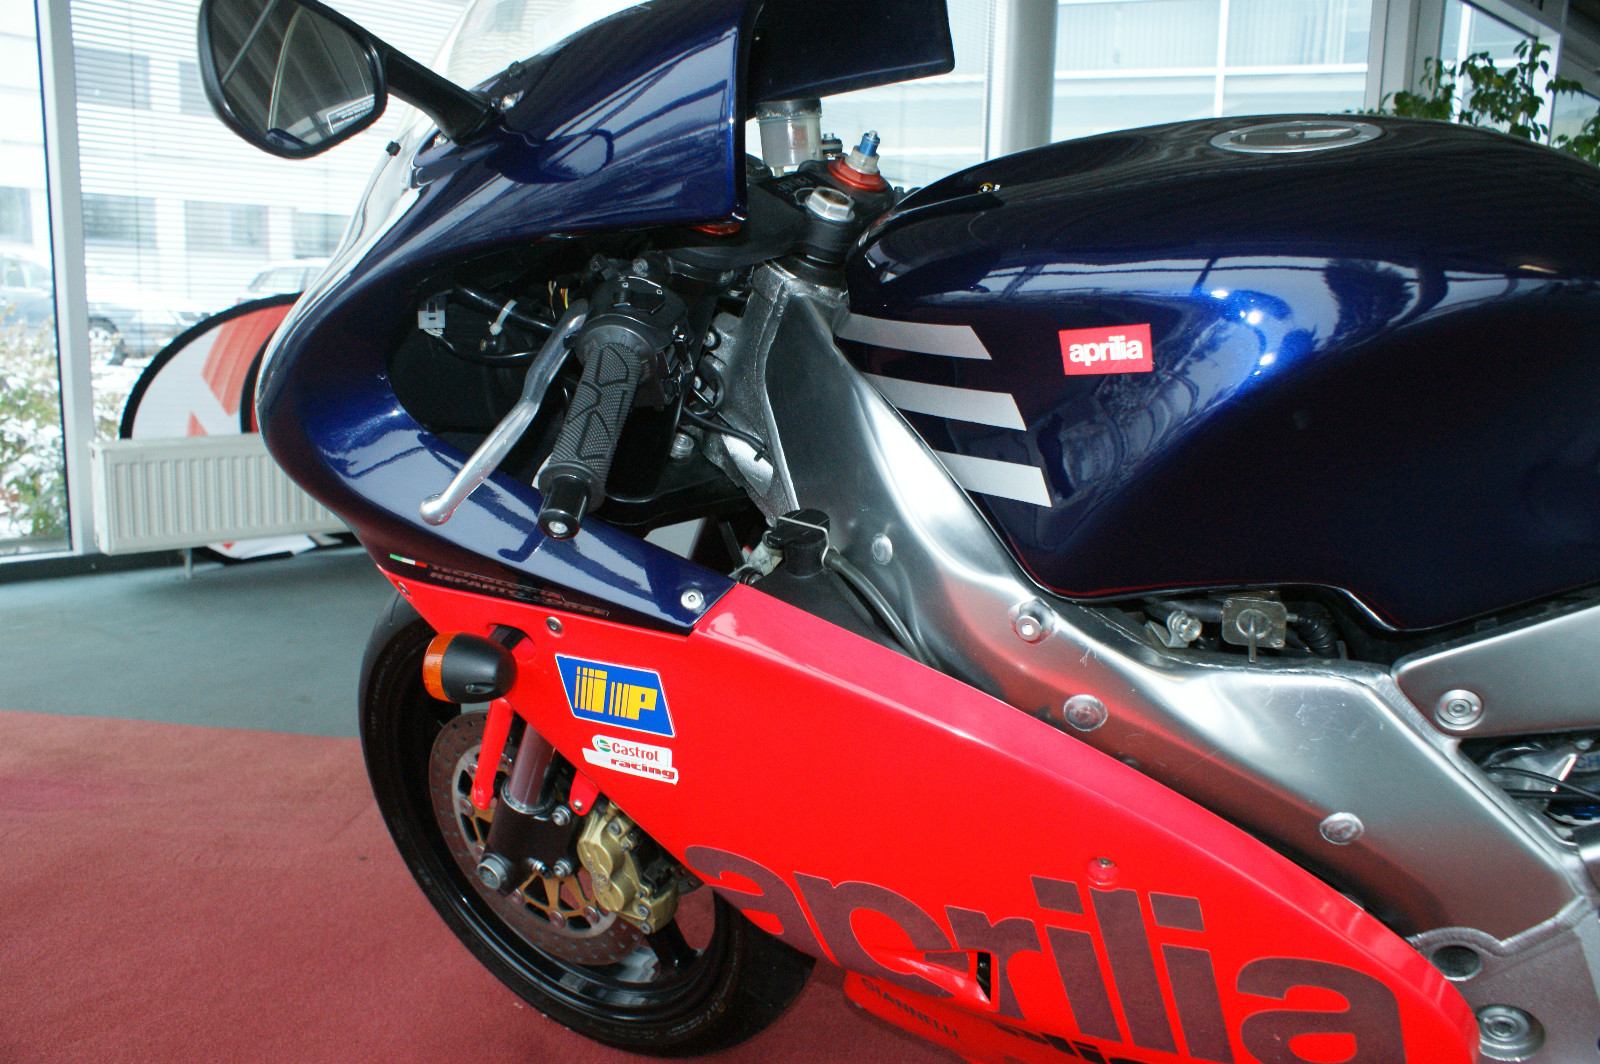 Aprilia Archives Page 23 Of 50 Rare Sportbikes For Sale Rs 250 Wiring Harness Kgrhqvhjfqfemt0kb 2brd Po6jv60 57